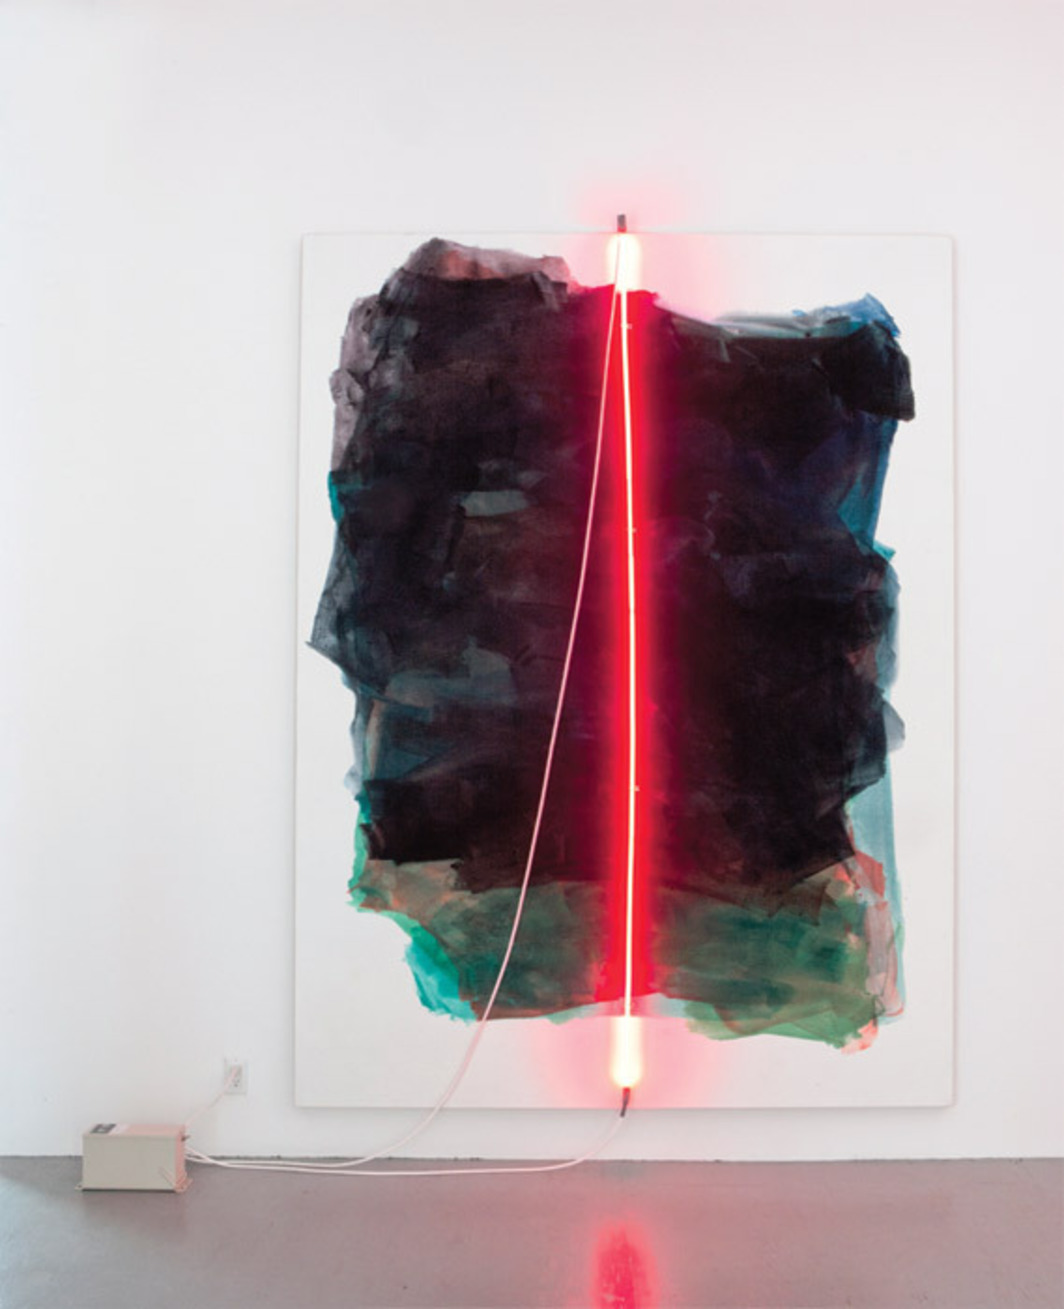 "Mary Weatherford, Empire, 2012, Flashe paint and neon on linen, 105 x 79""."